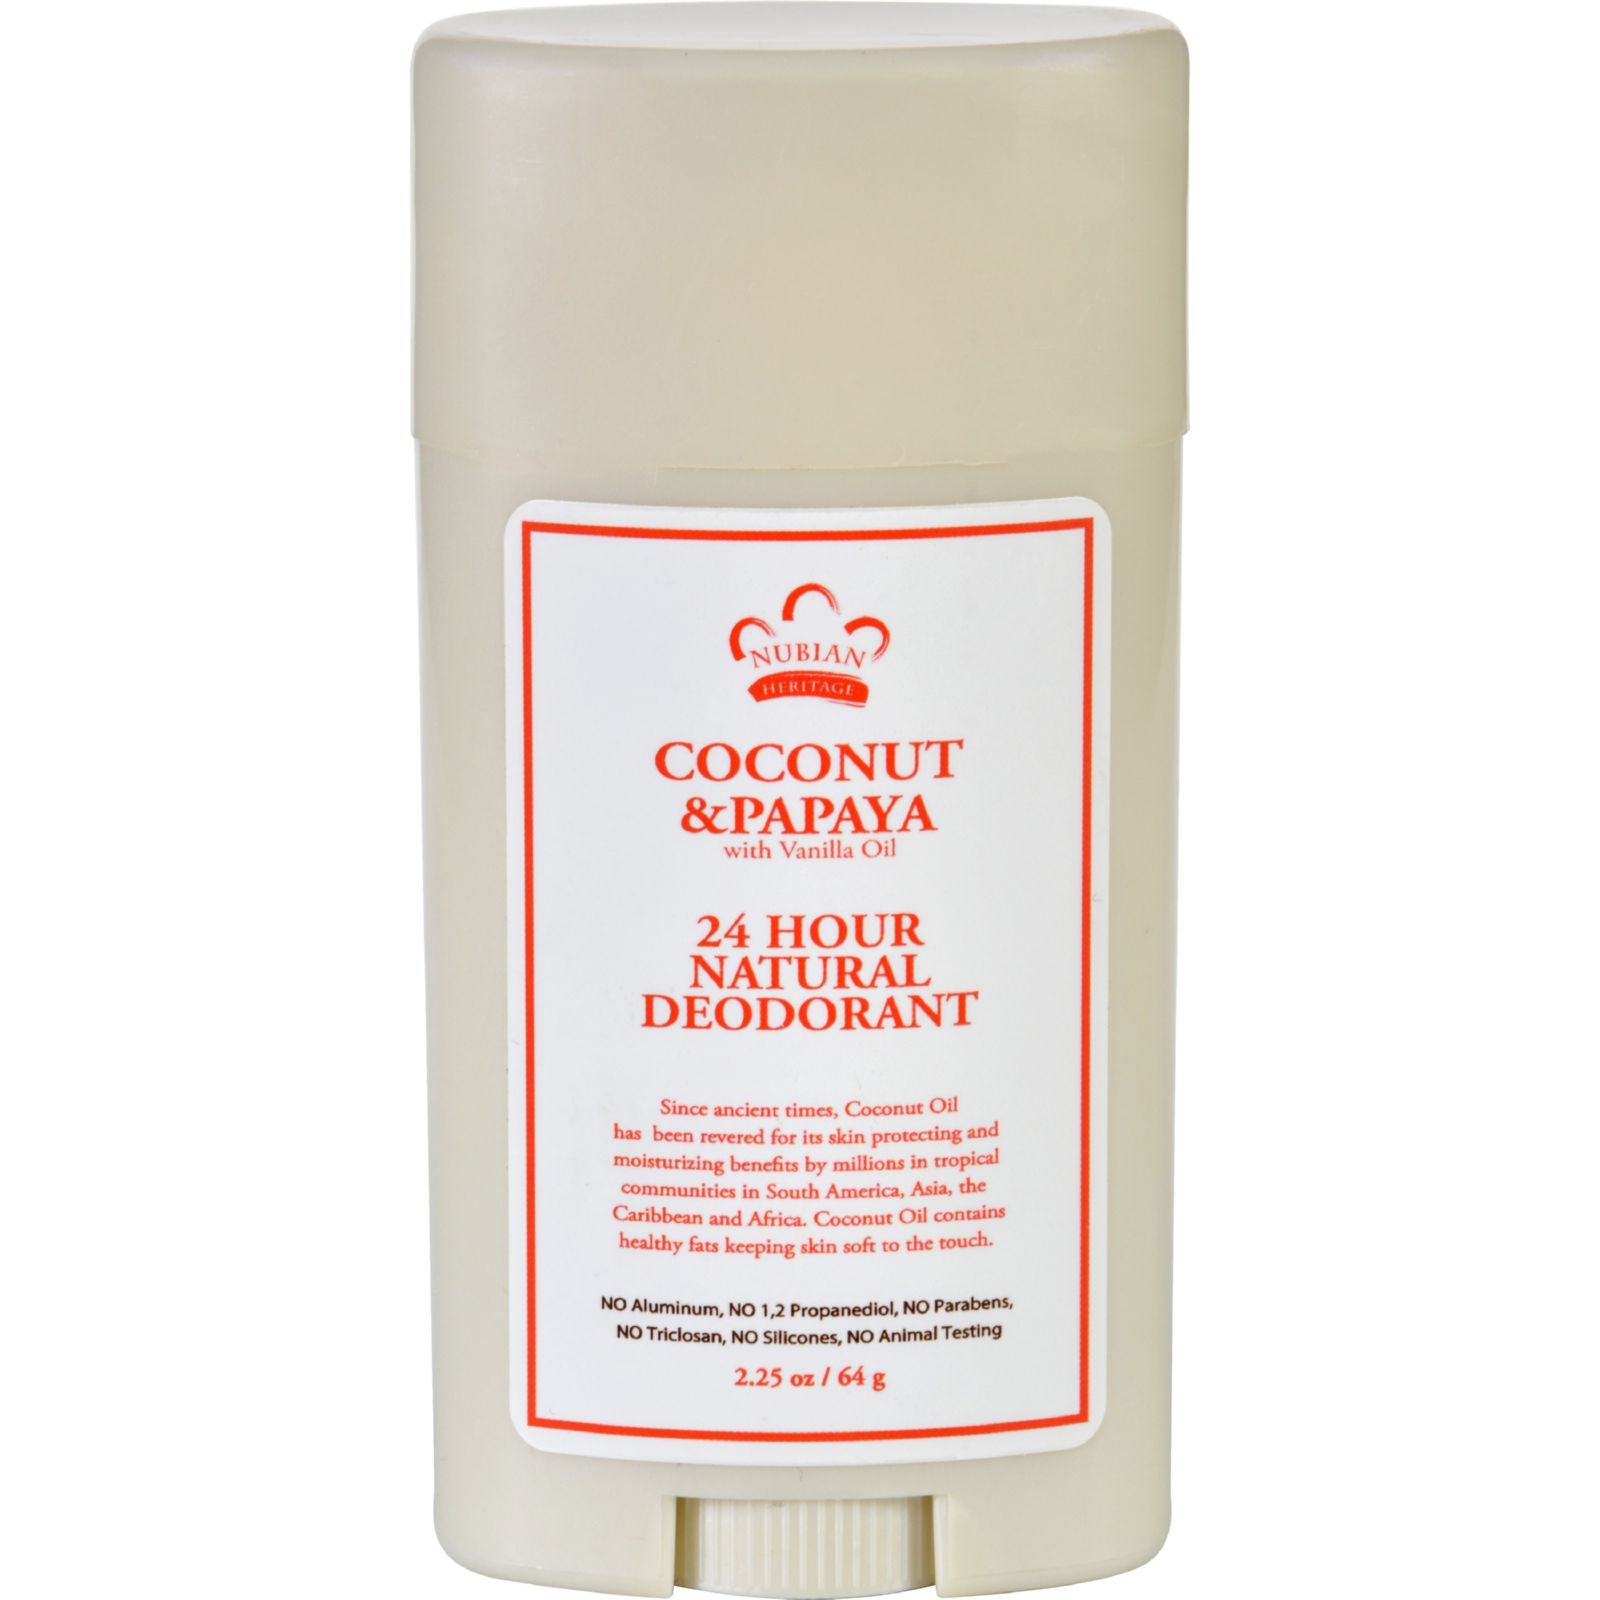 Nubian Heritage Deodorant  All Natural  24 Hour  Coconut and Papaya  with Vanilla Oil  2.25 oz